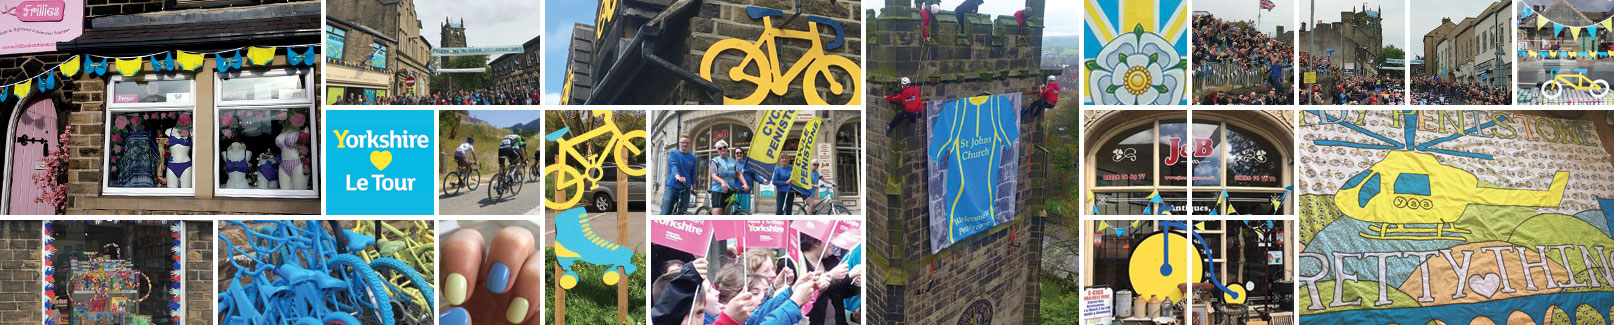 Montage of Tour de Yorkshire photos in the Penistone area